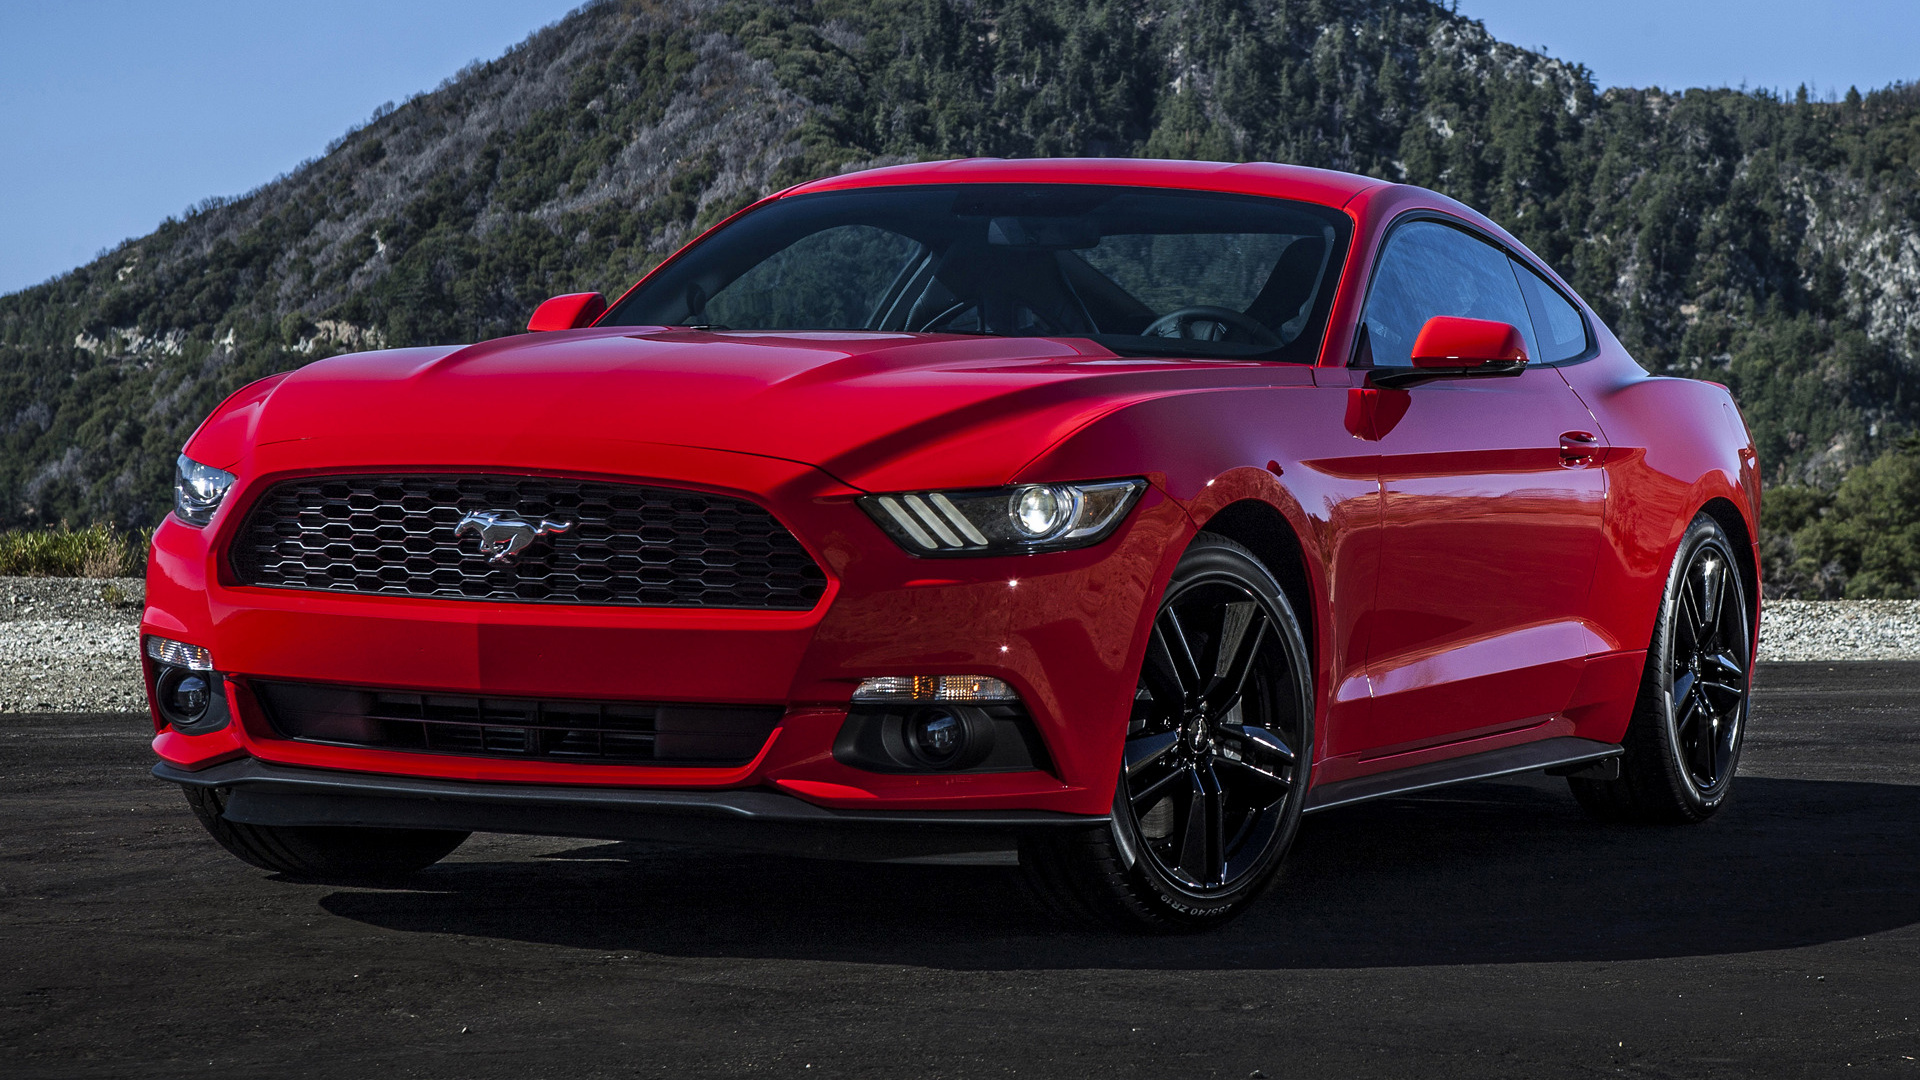 2015 Ford Mustang Ecoboost Hd Wallpaper Background Image 1920x1080 Id 960075 Wallpaper Abyss